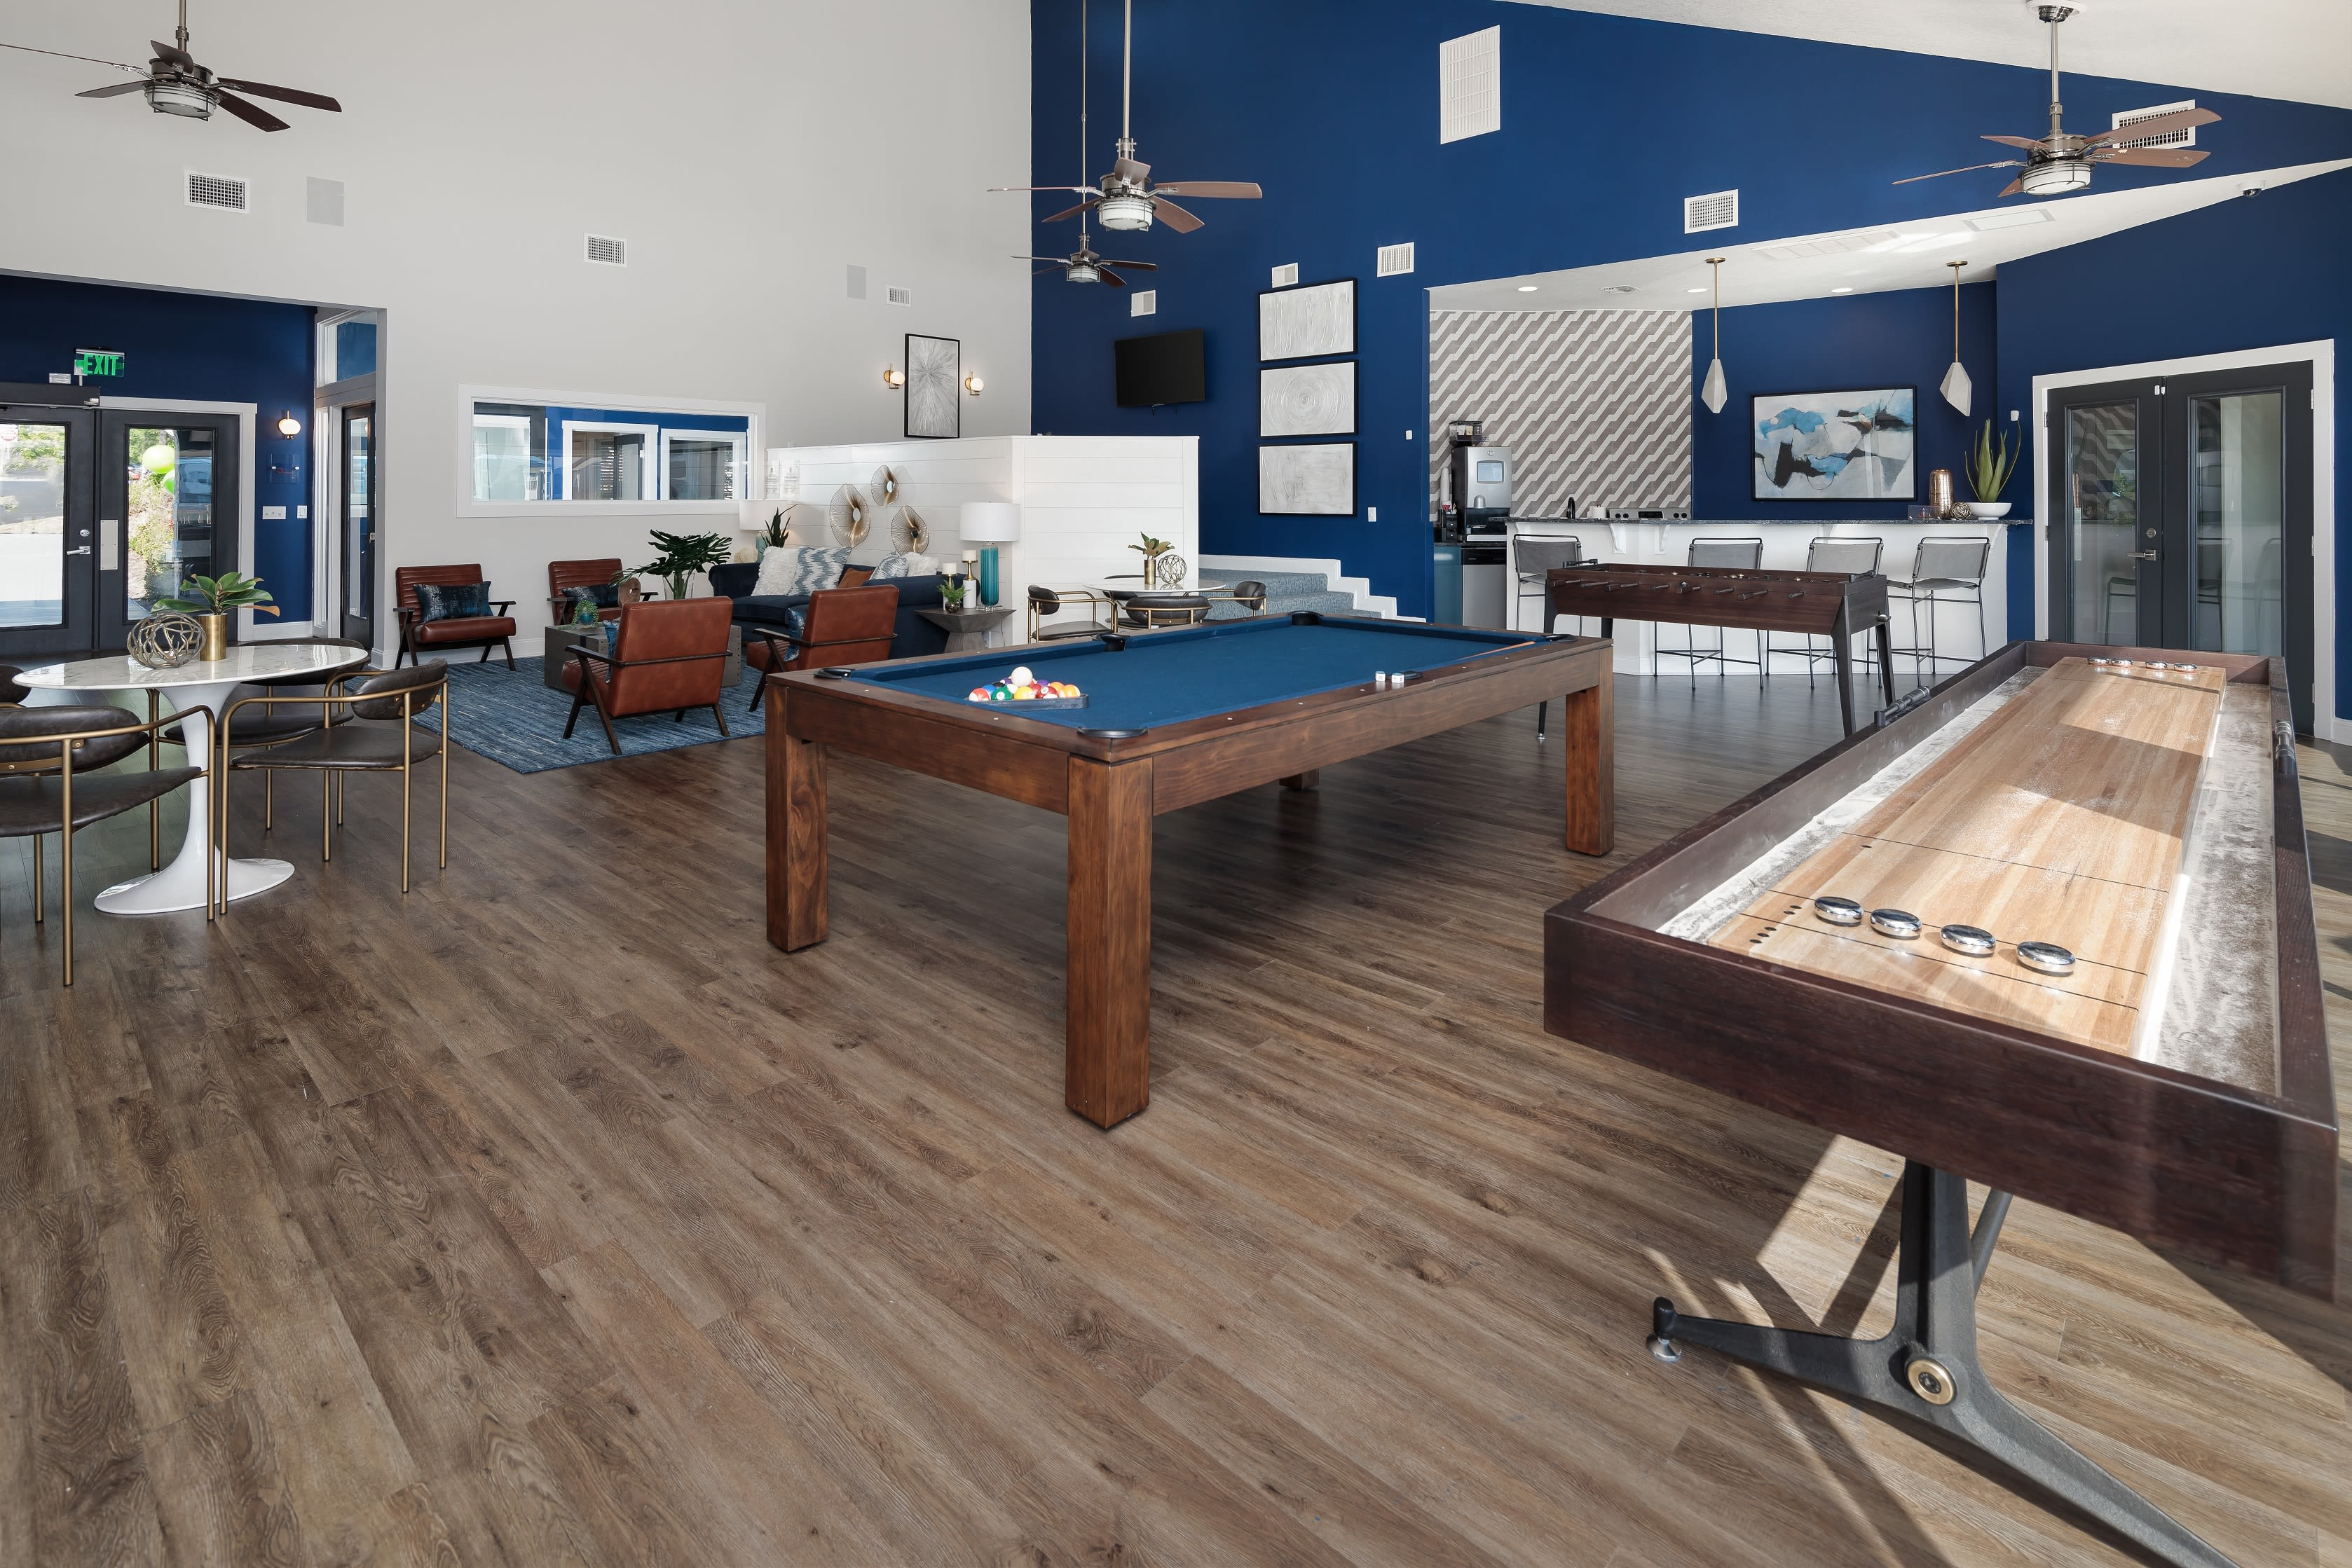 Onsite pool table for residents at Onyx Winter Park in Casselberry, Florida